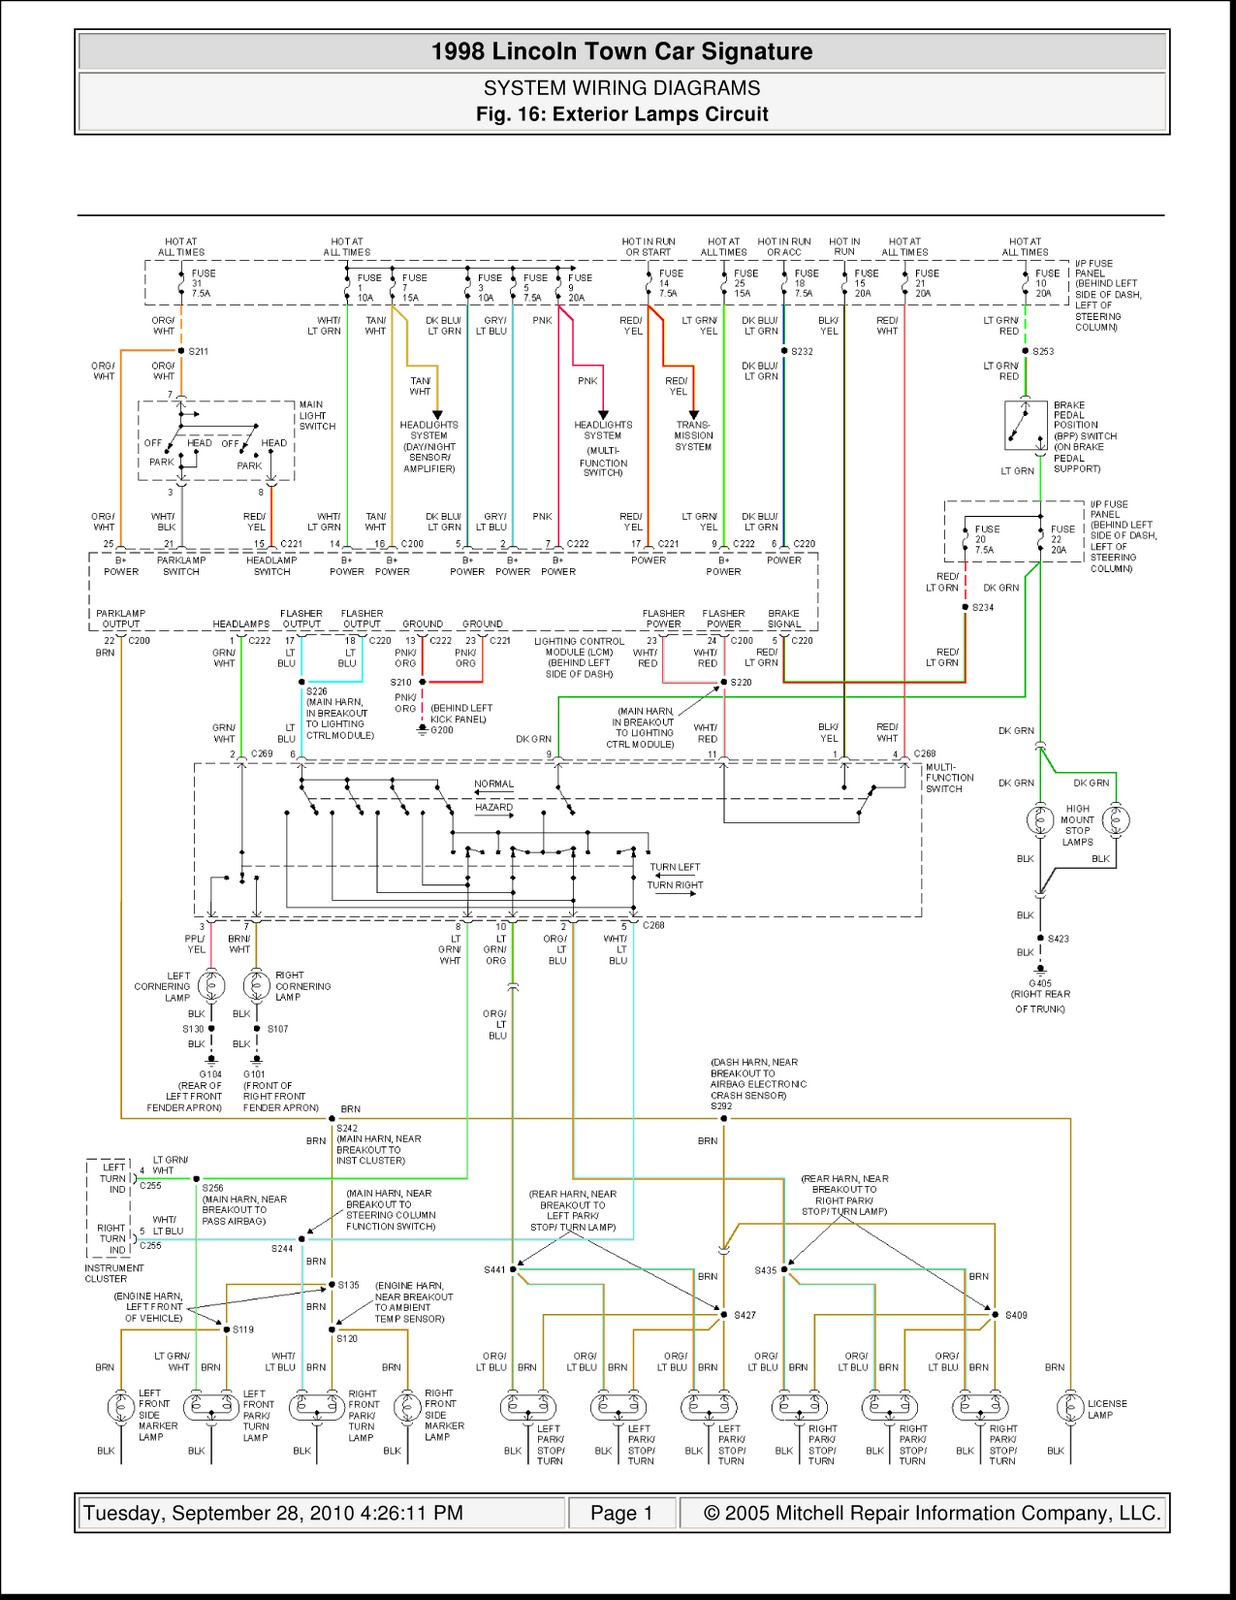 small resolution of 1998 lincoln town car signature system wiring diagrams